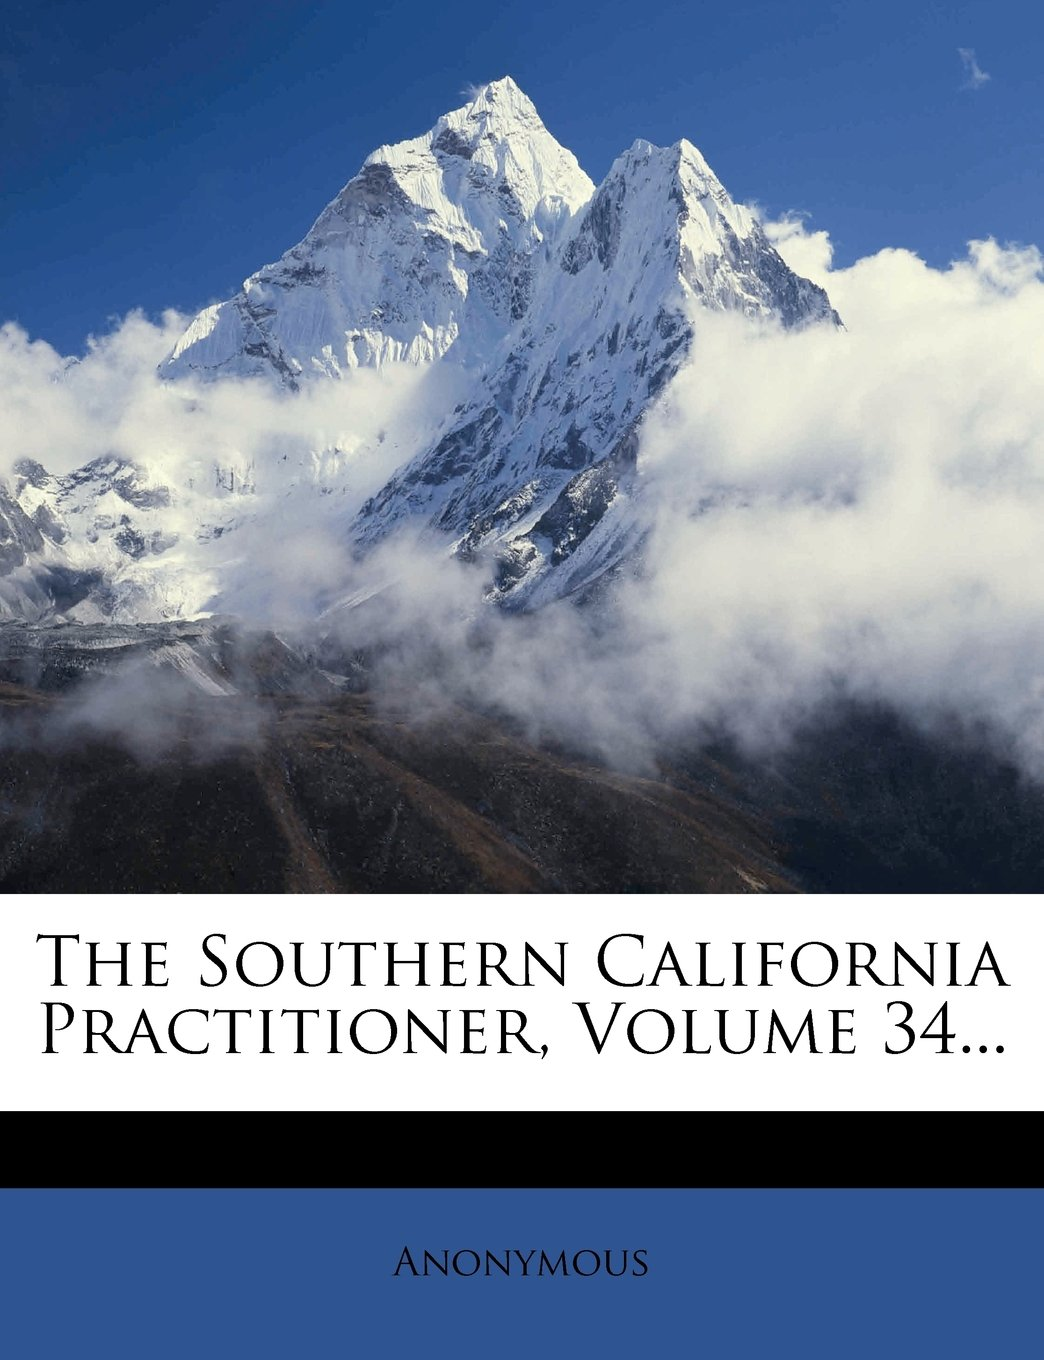 The Southern California Practitioner, Volume 34... pdf